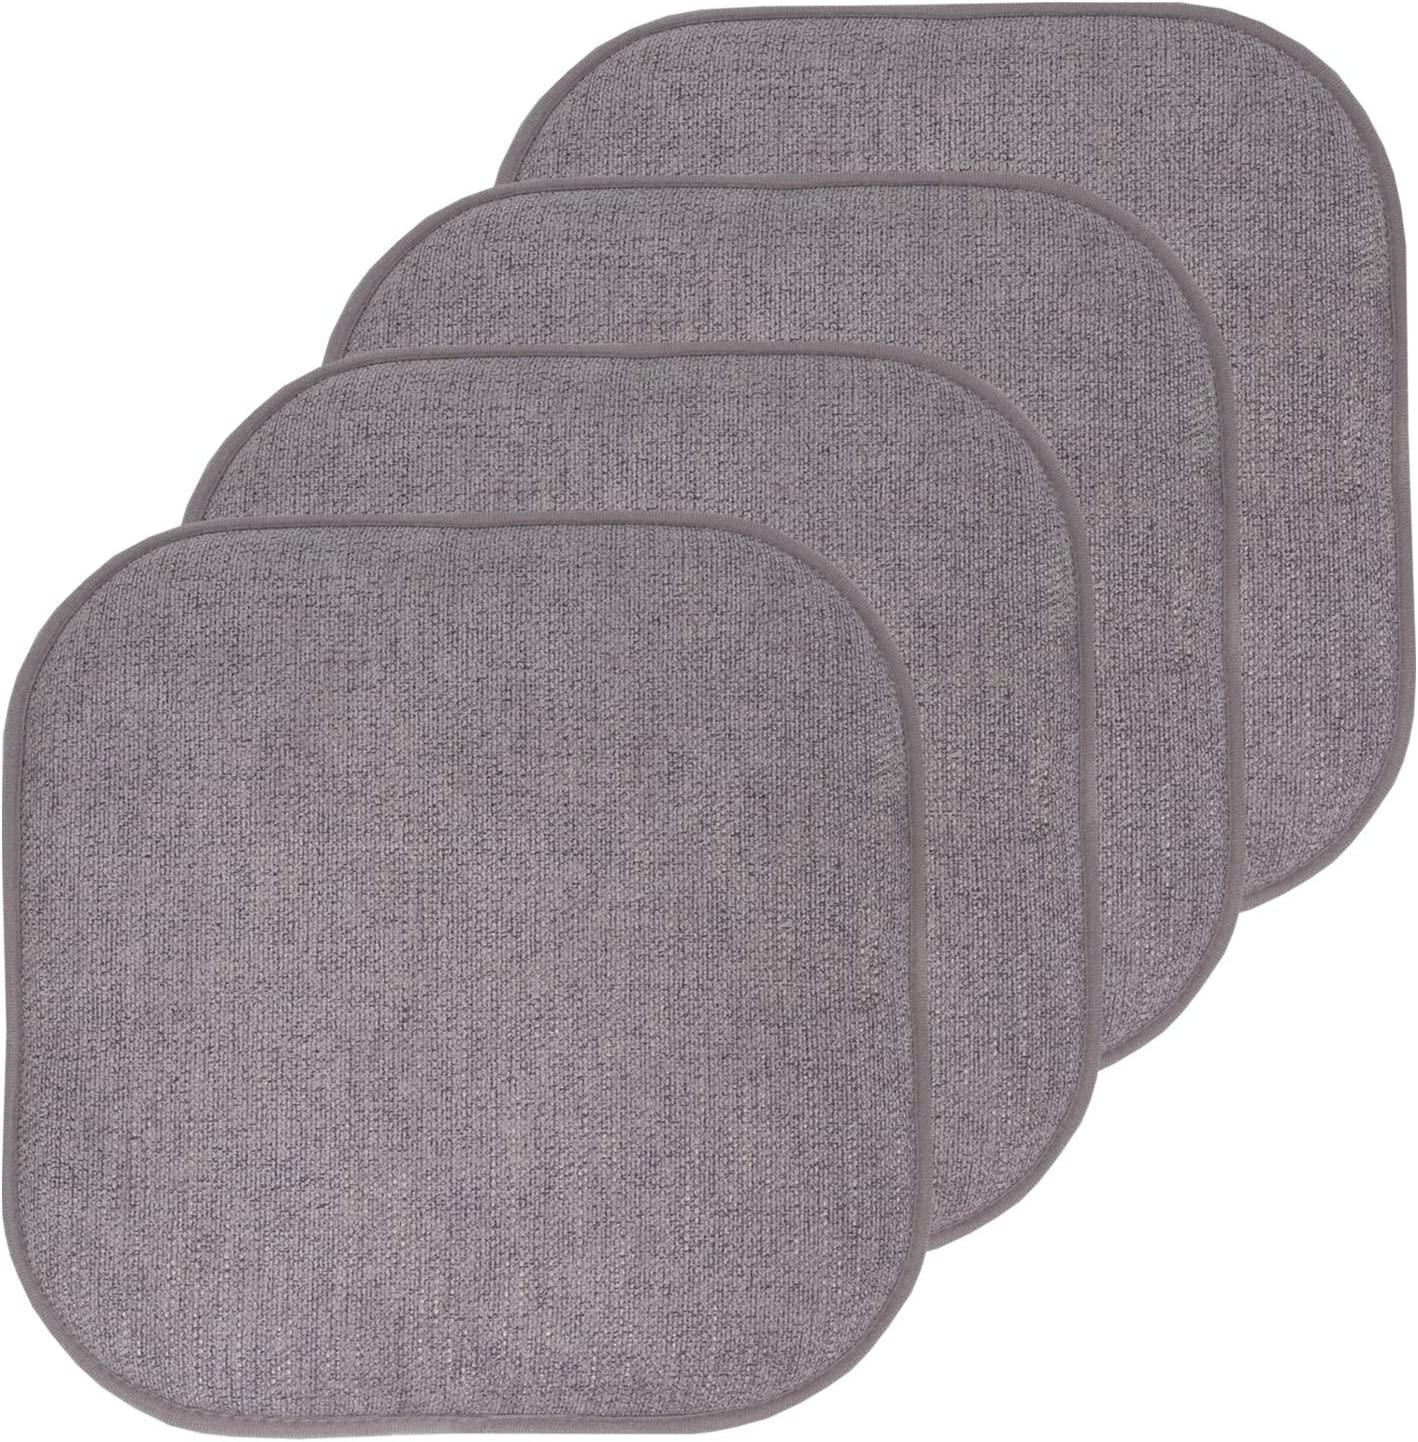 """Sweet Home Collection Chair Cushion Memory Foam Pads Honeycomb Pattern Slip Non Skid Rubber Back Rounded Square 16"""" x 16"""" Seat Cover, 4 Pack, Alexis Gray/Silver"""